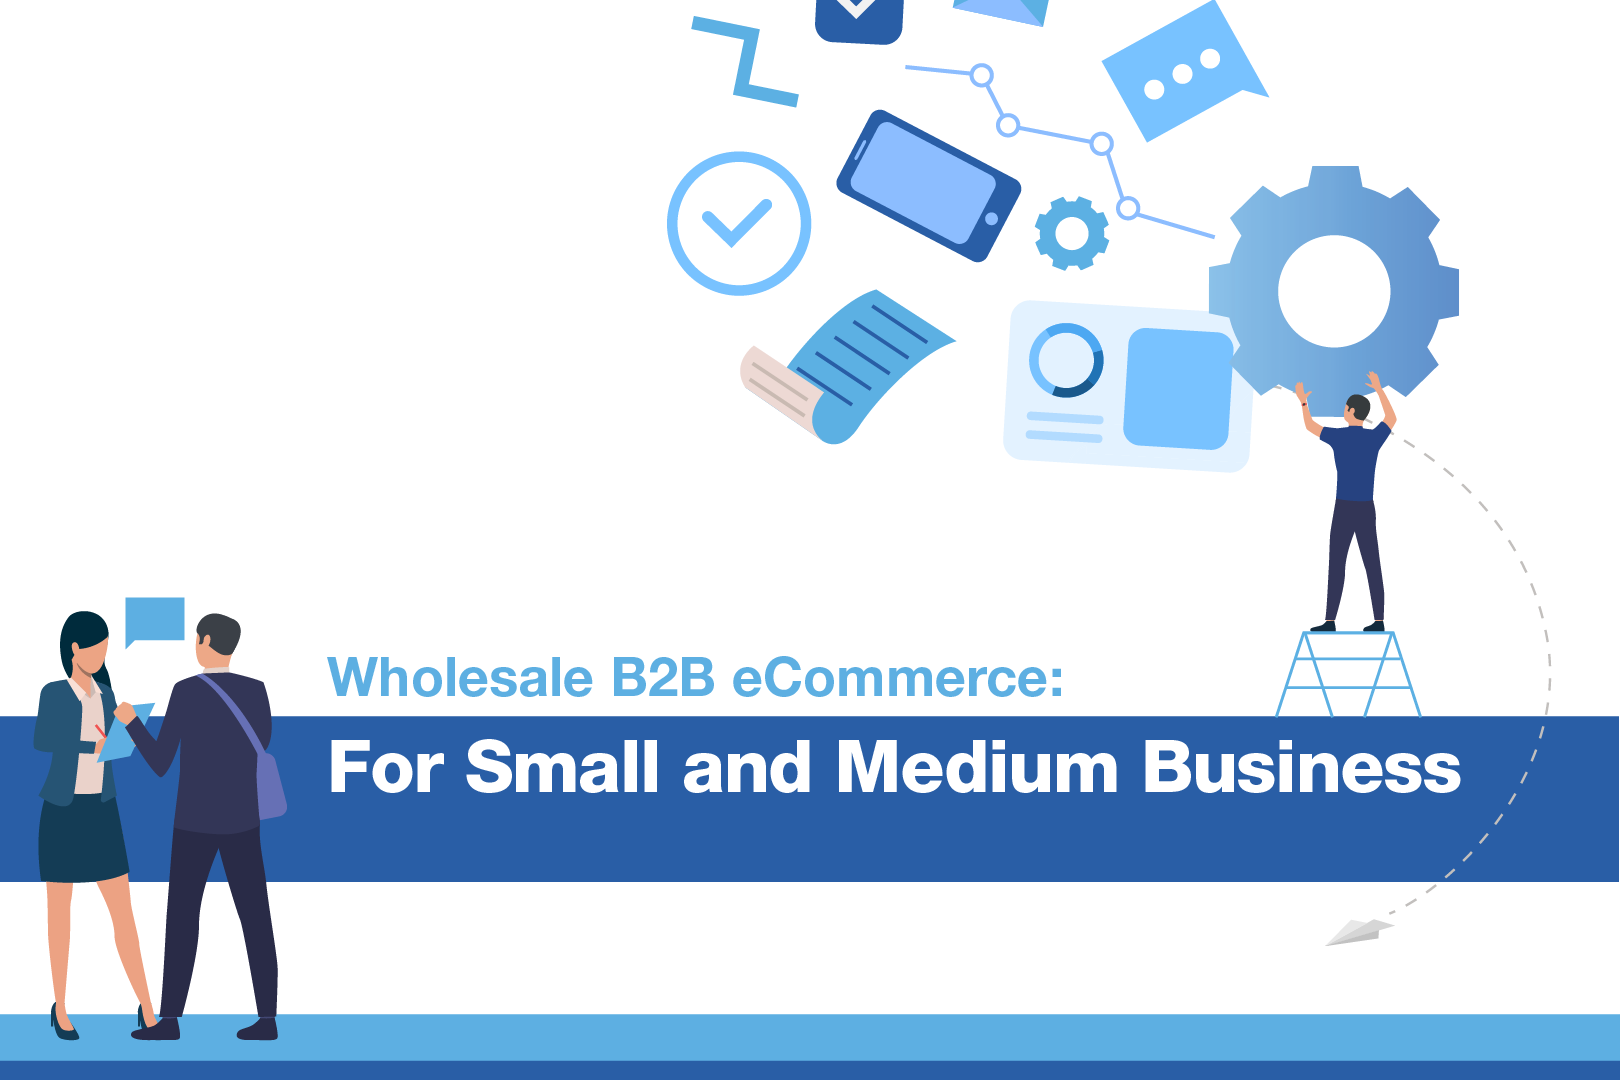 Cover of the Wholesale B2B eCommerce SMB